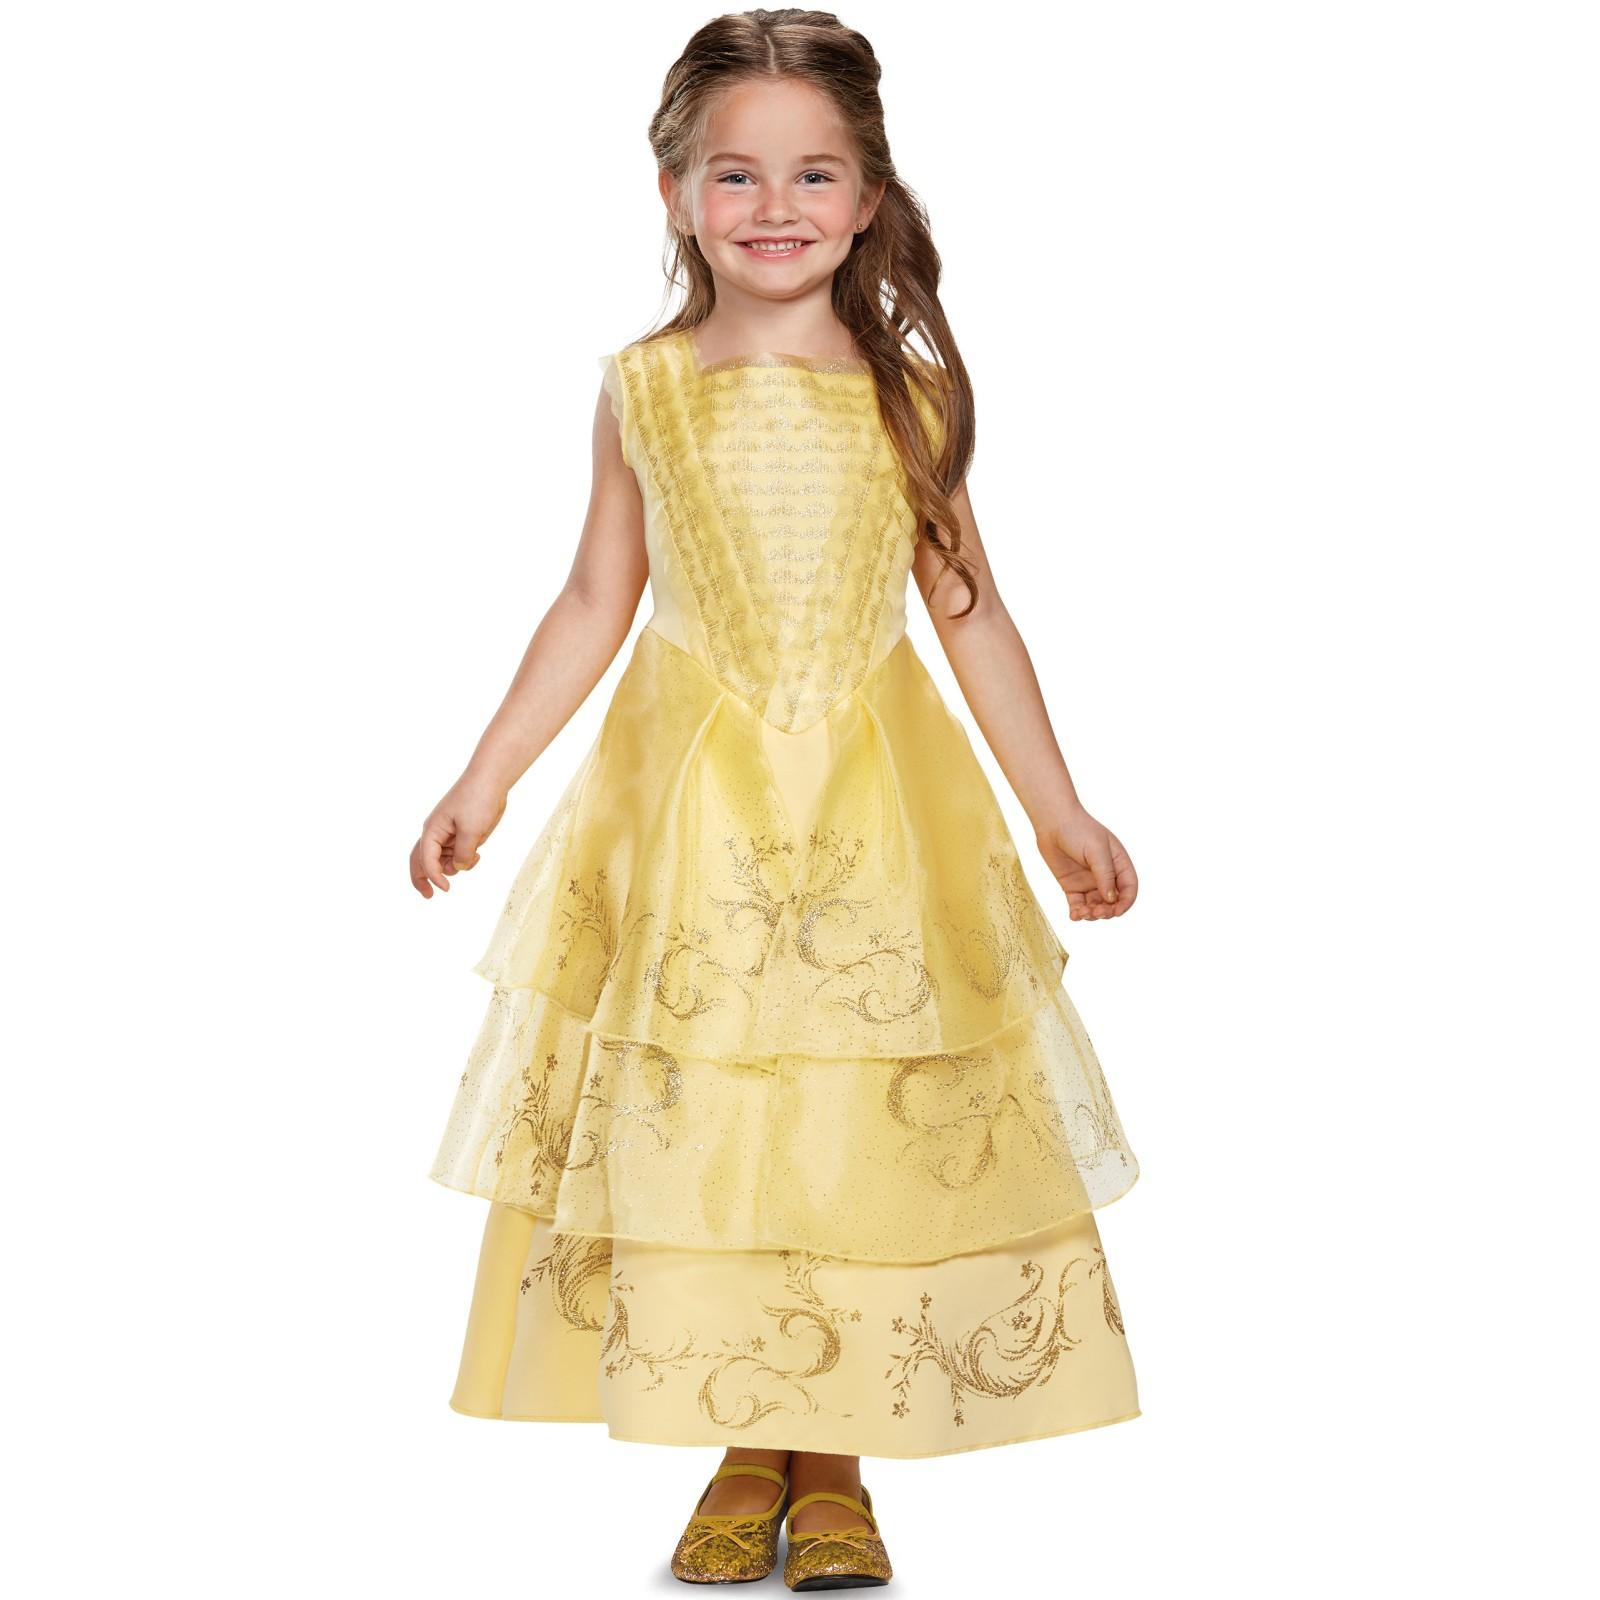 Child's Girls Deluxe Beauty And The Beast Belle Gown Costume